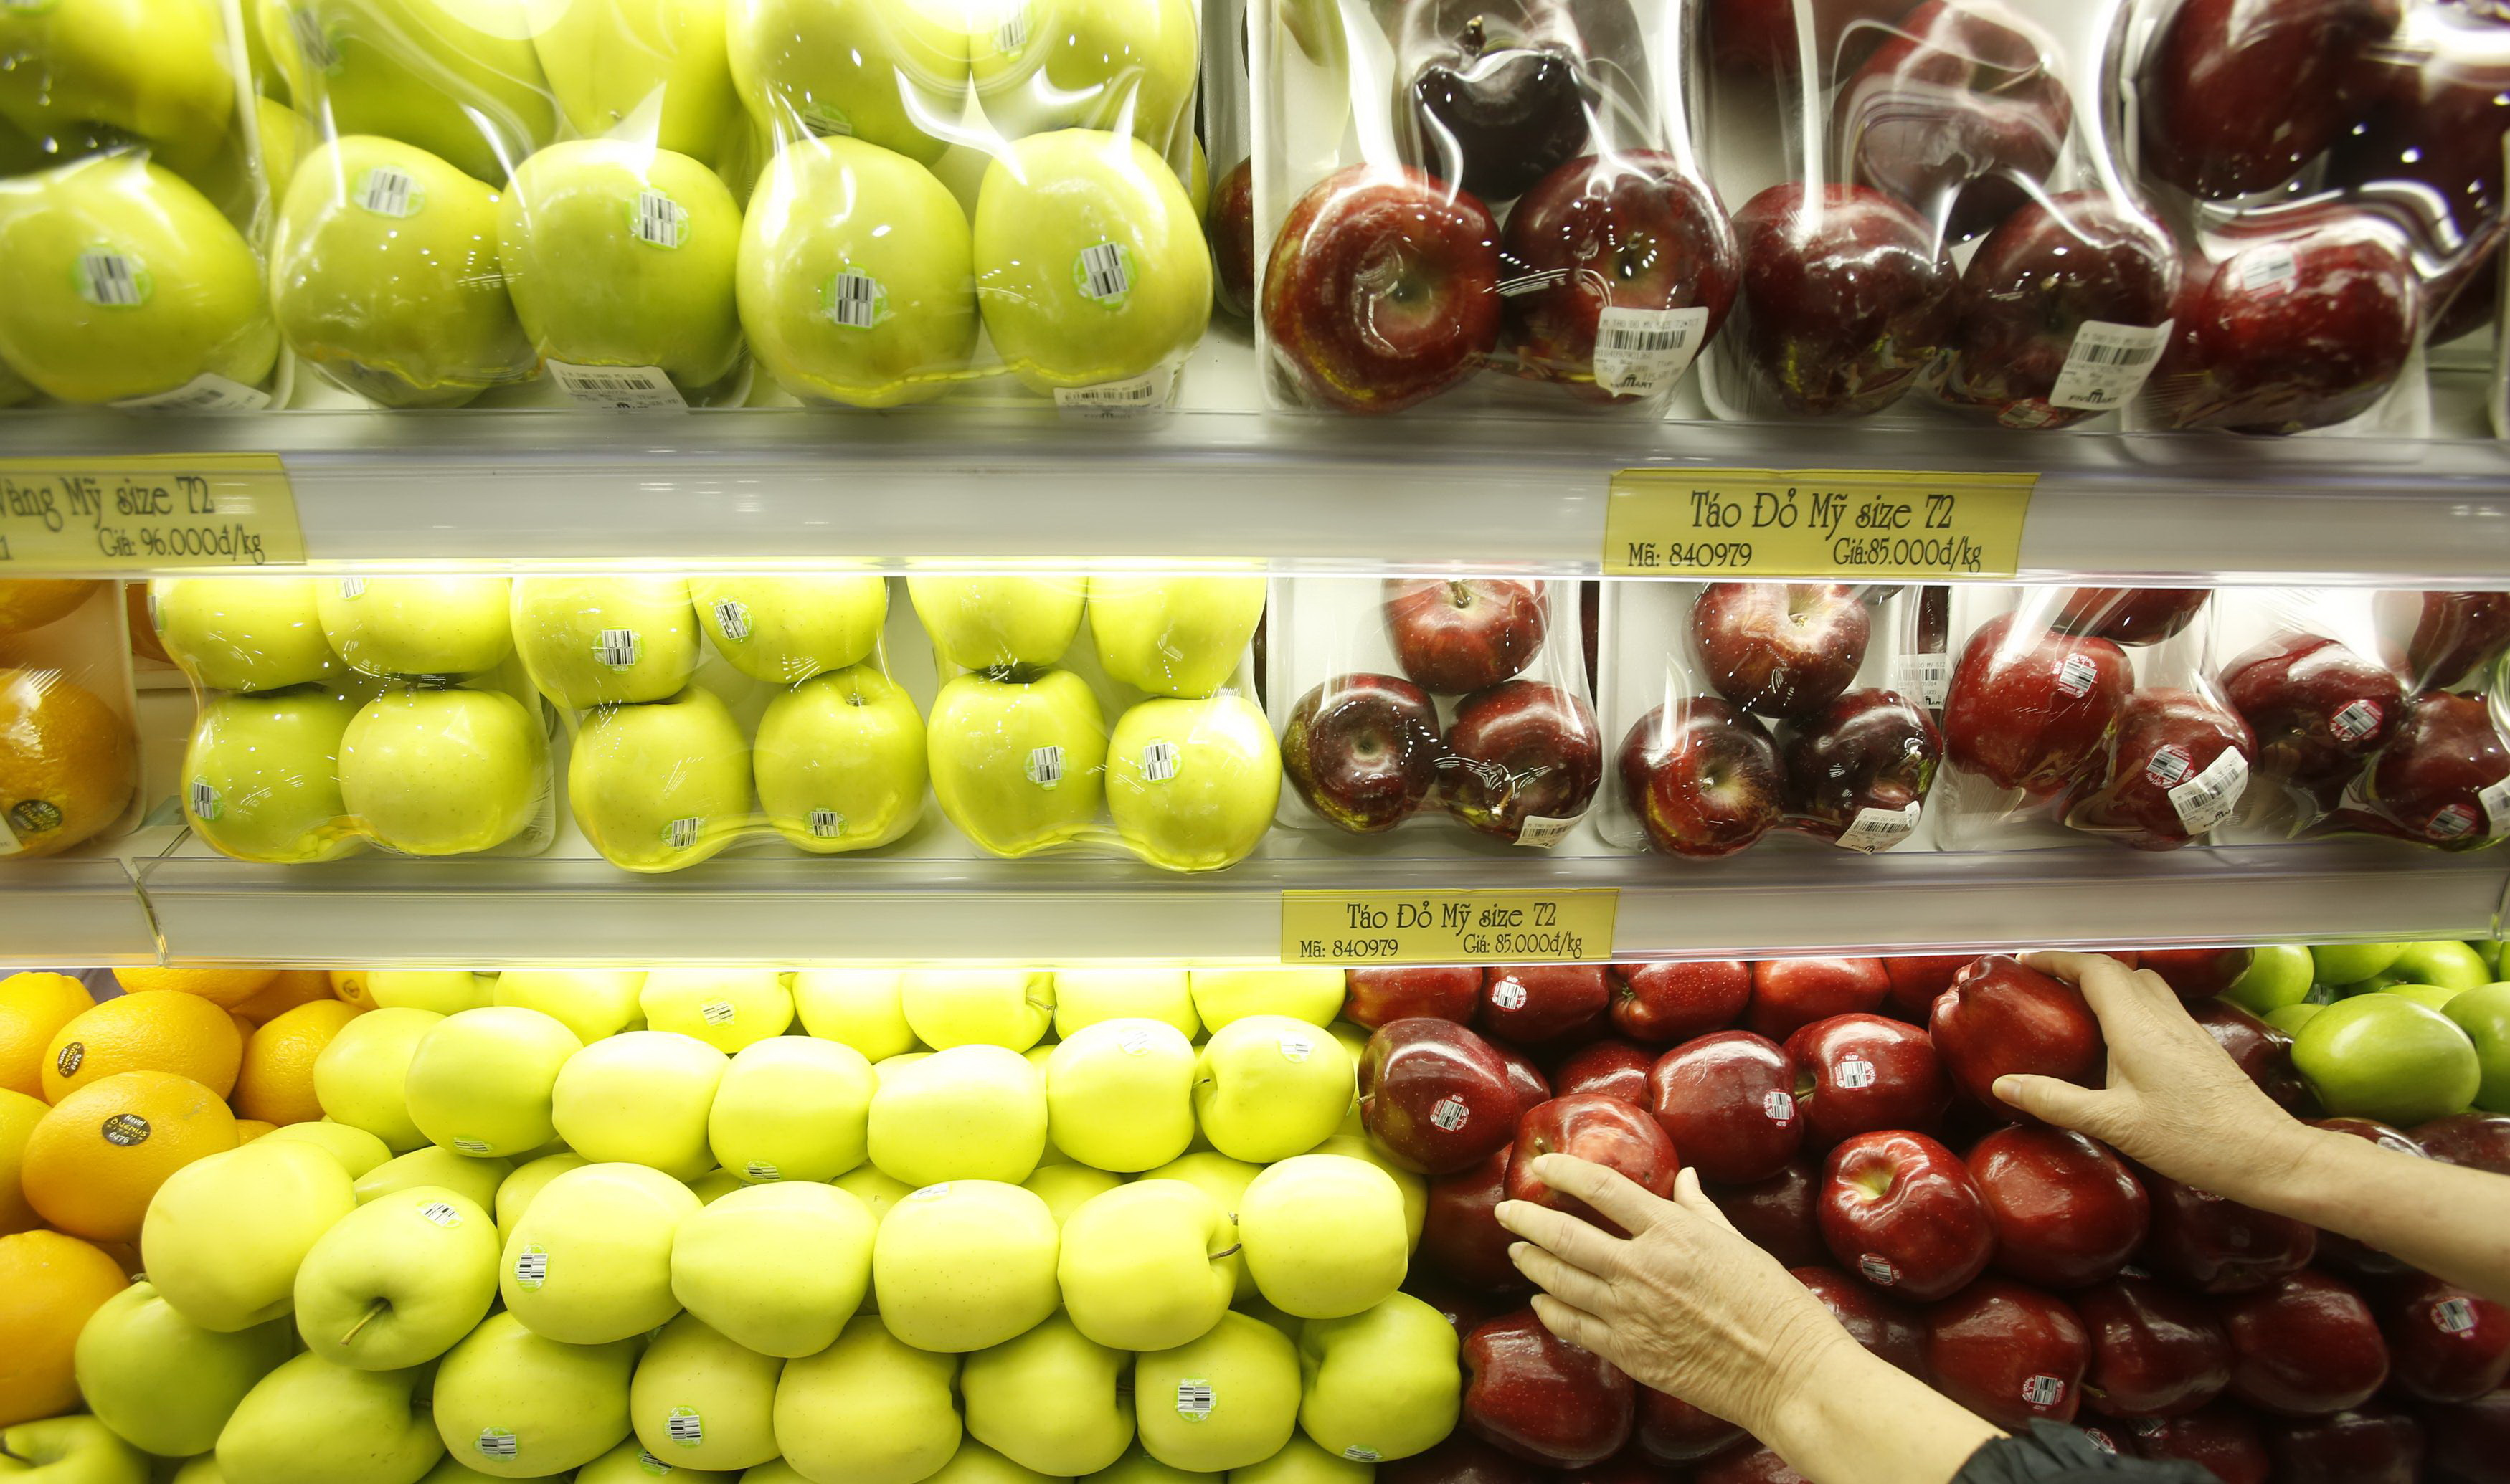 US trade group sees Vietnam as lucrative market for agricultural products | Business